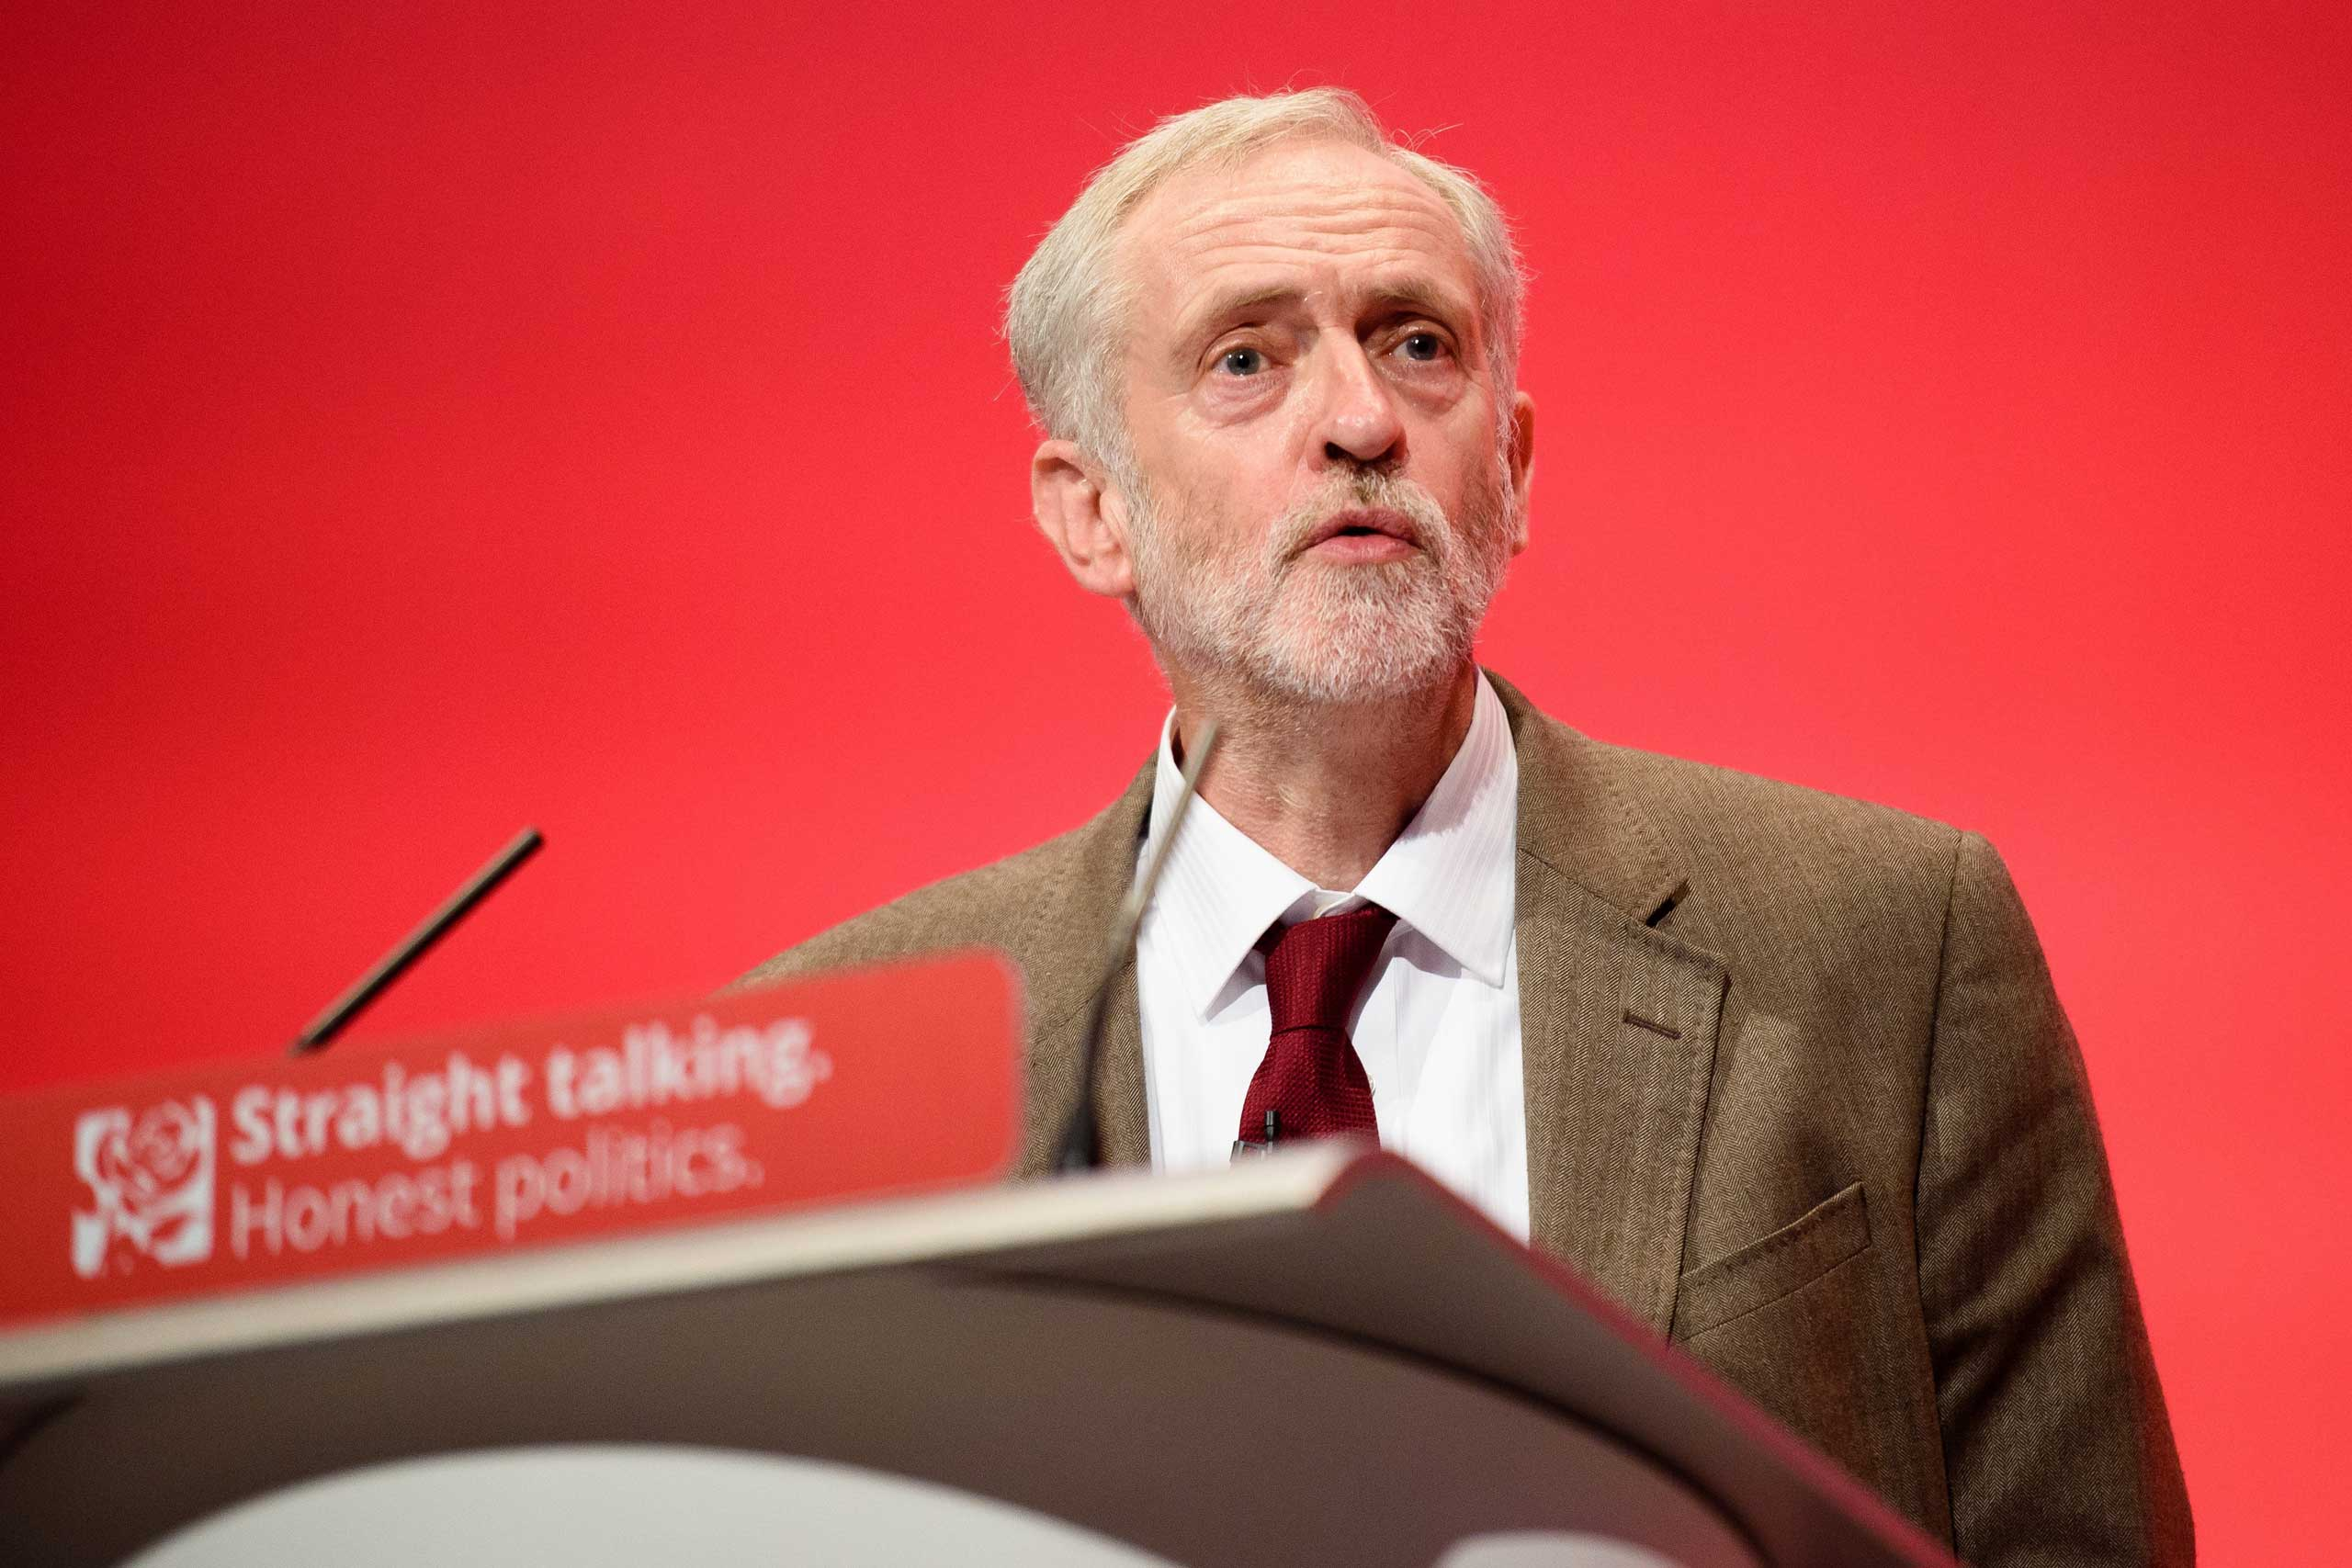 Labour Party Leader Jeremy Corbyn makes his keynote address on the third day of the annual Labour Party Conference in Brighton, south east England, on Sept. 29, 2015.